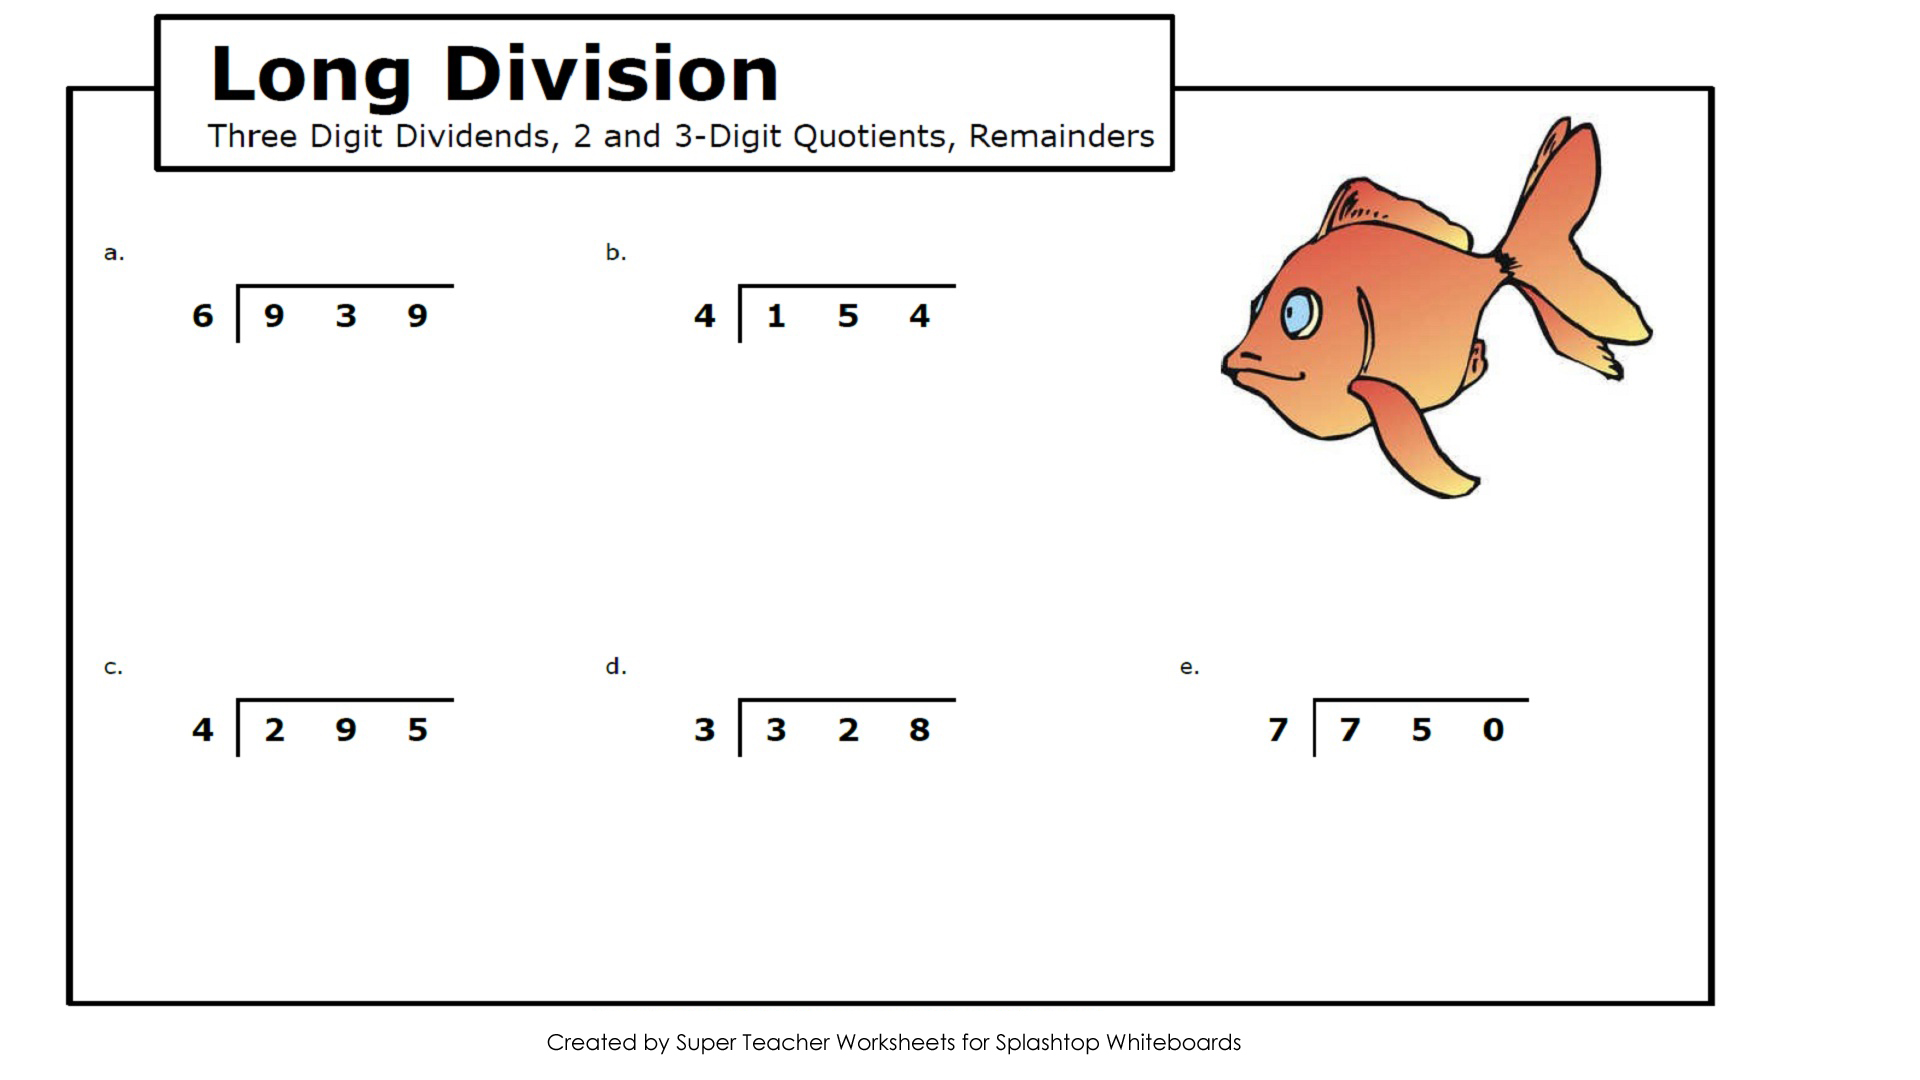 worksheet Long Divison math long division lessons tes teach splashtop whiteboard background graphics